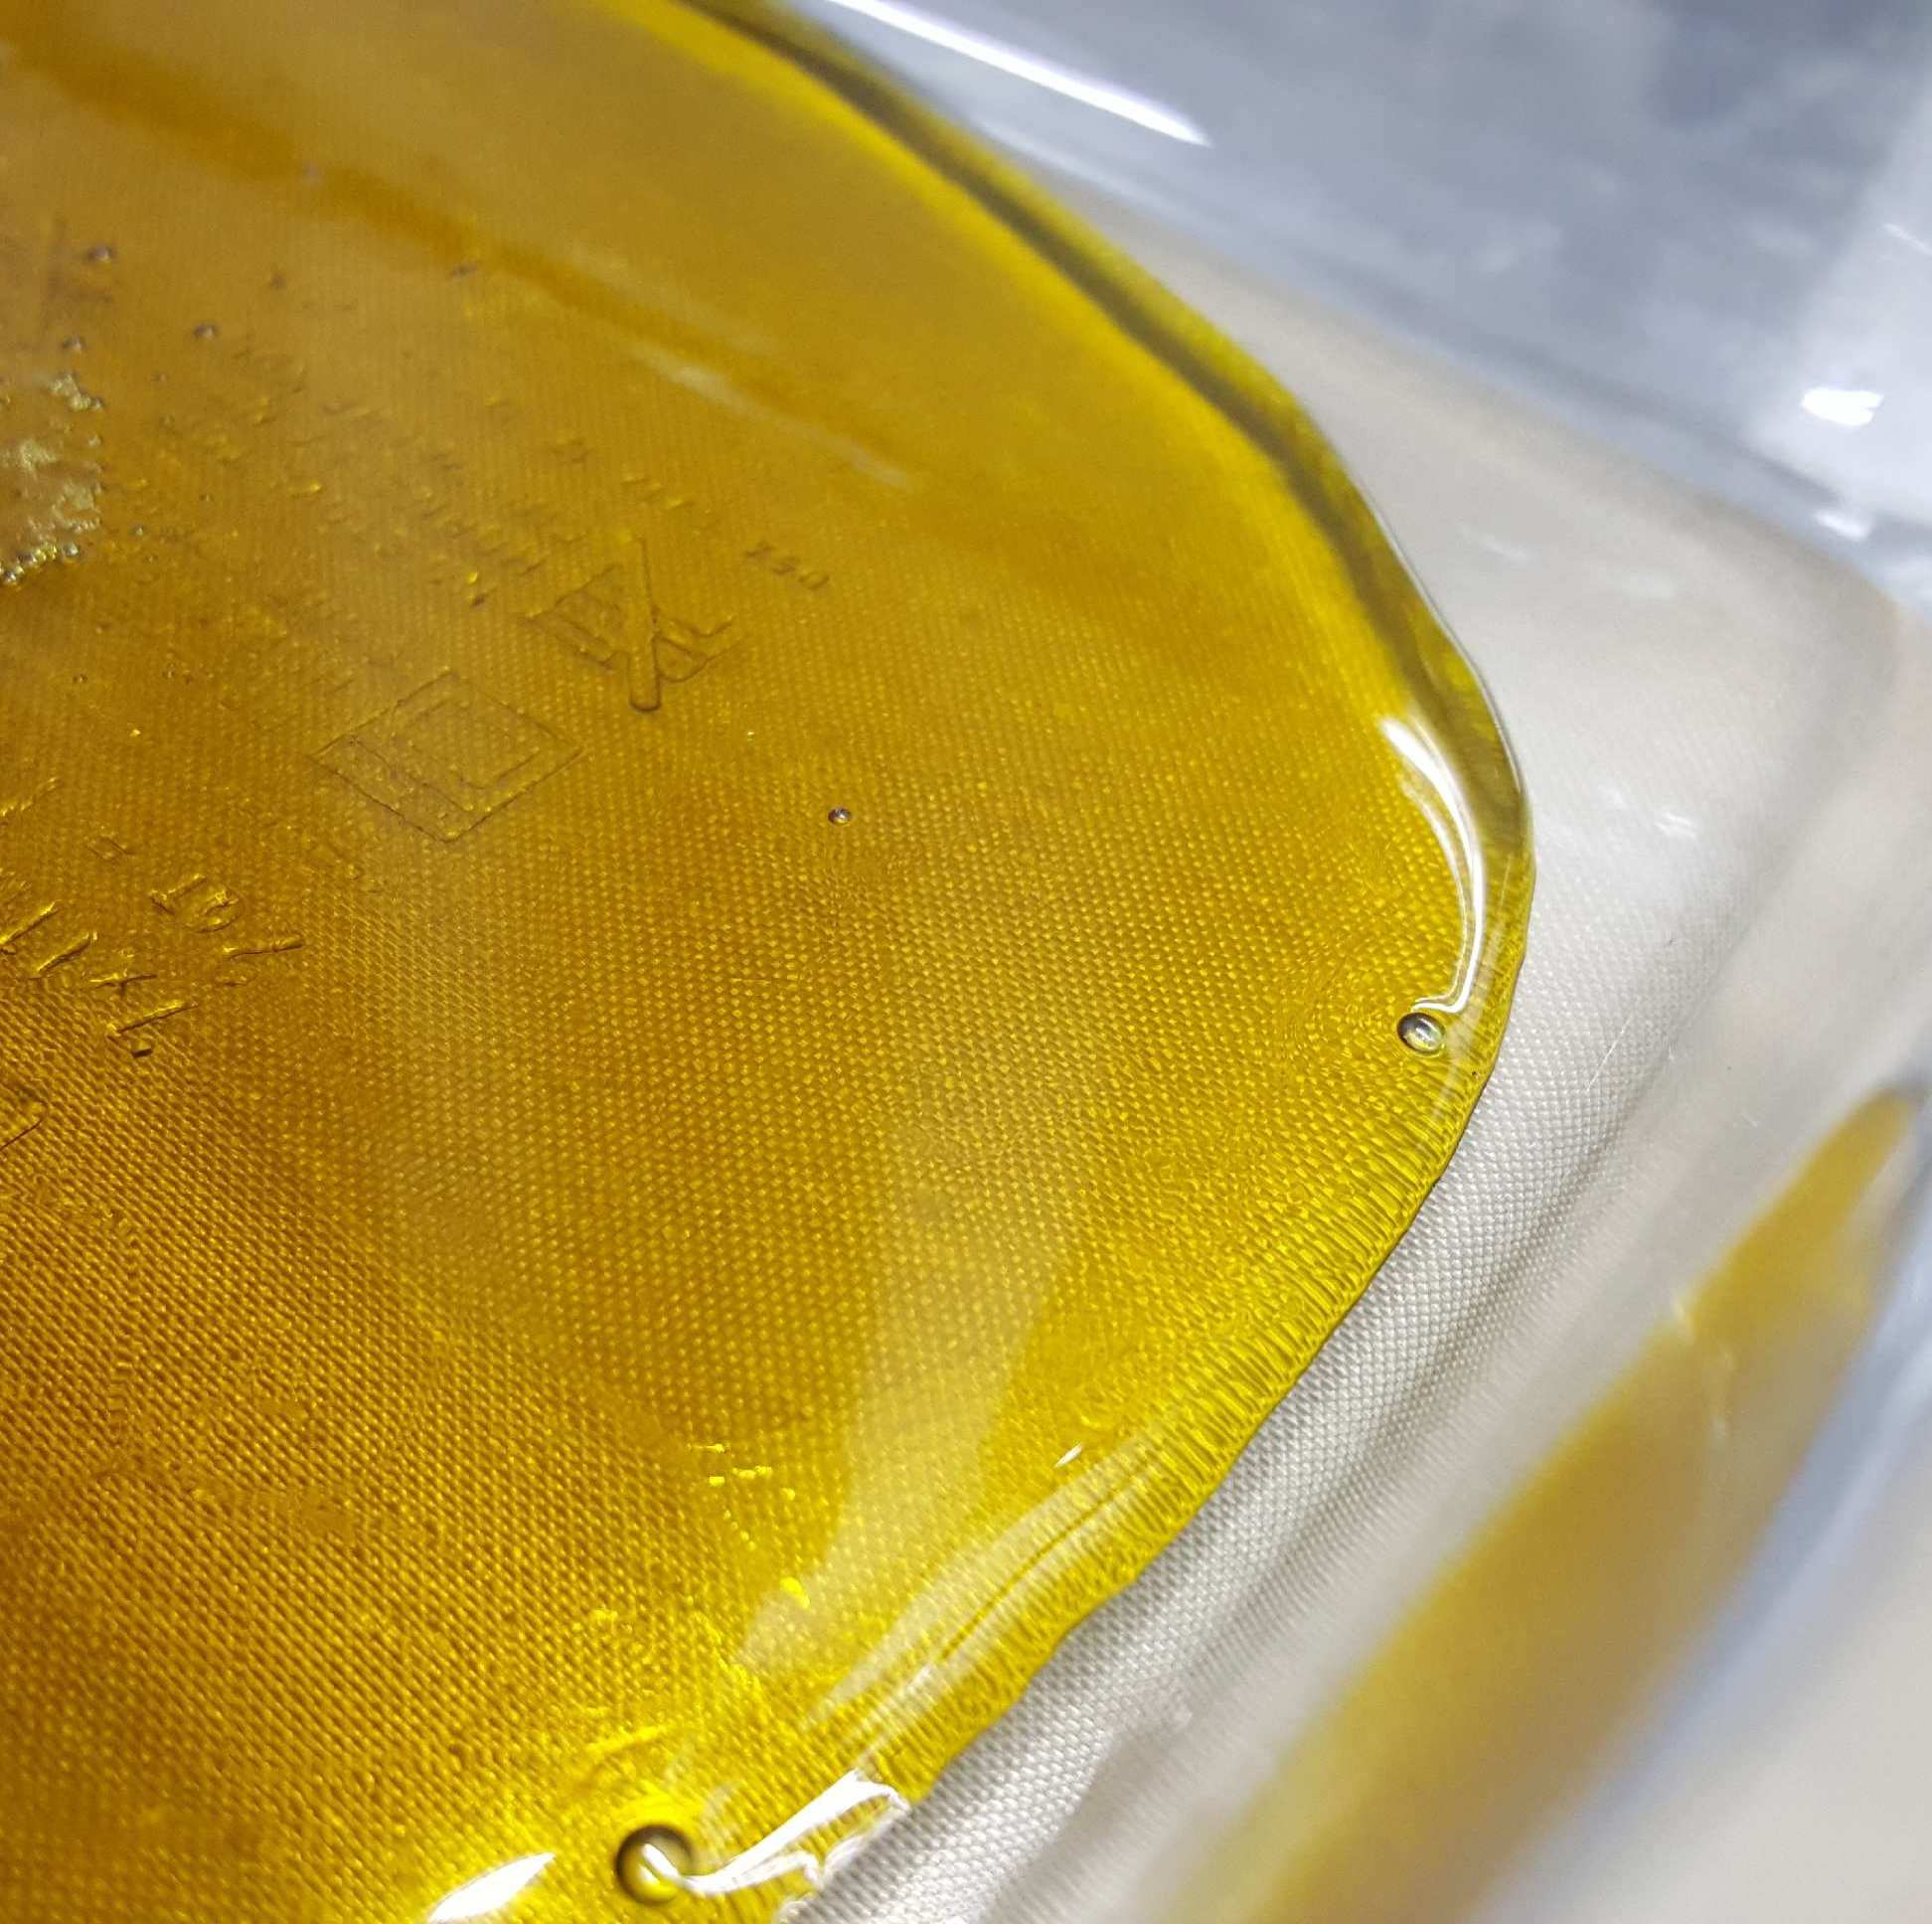 melting point extracts cured resin